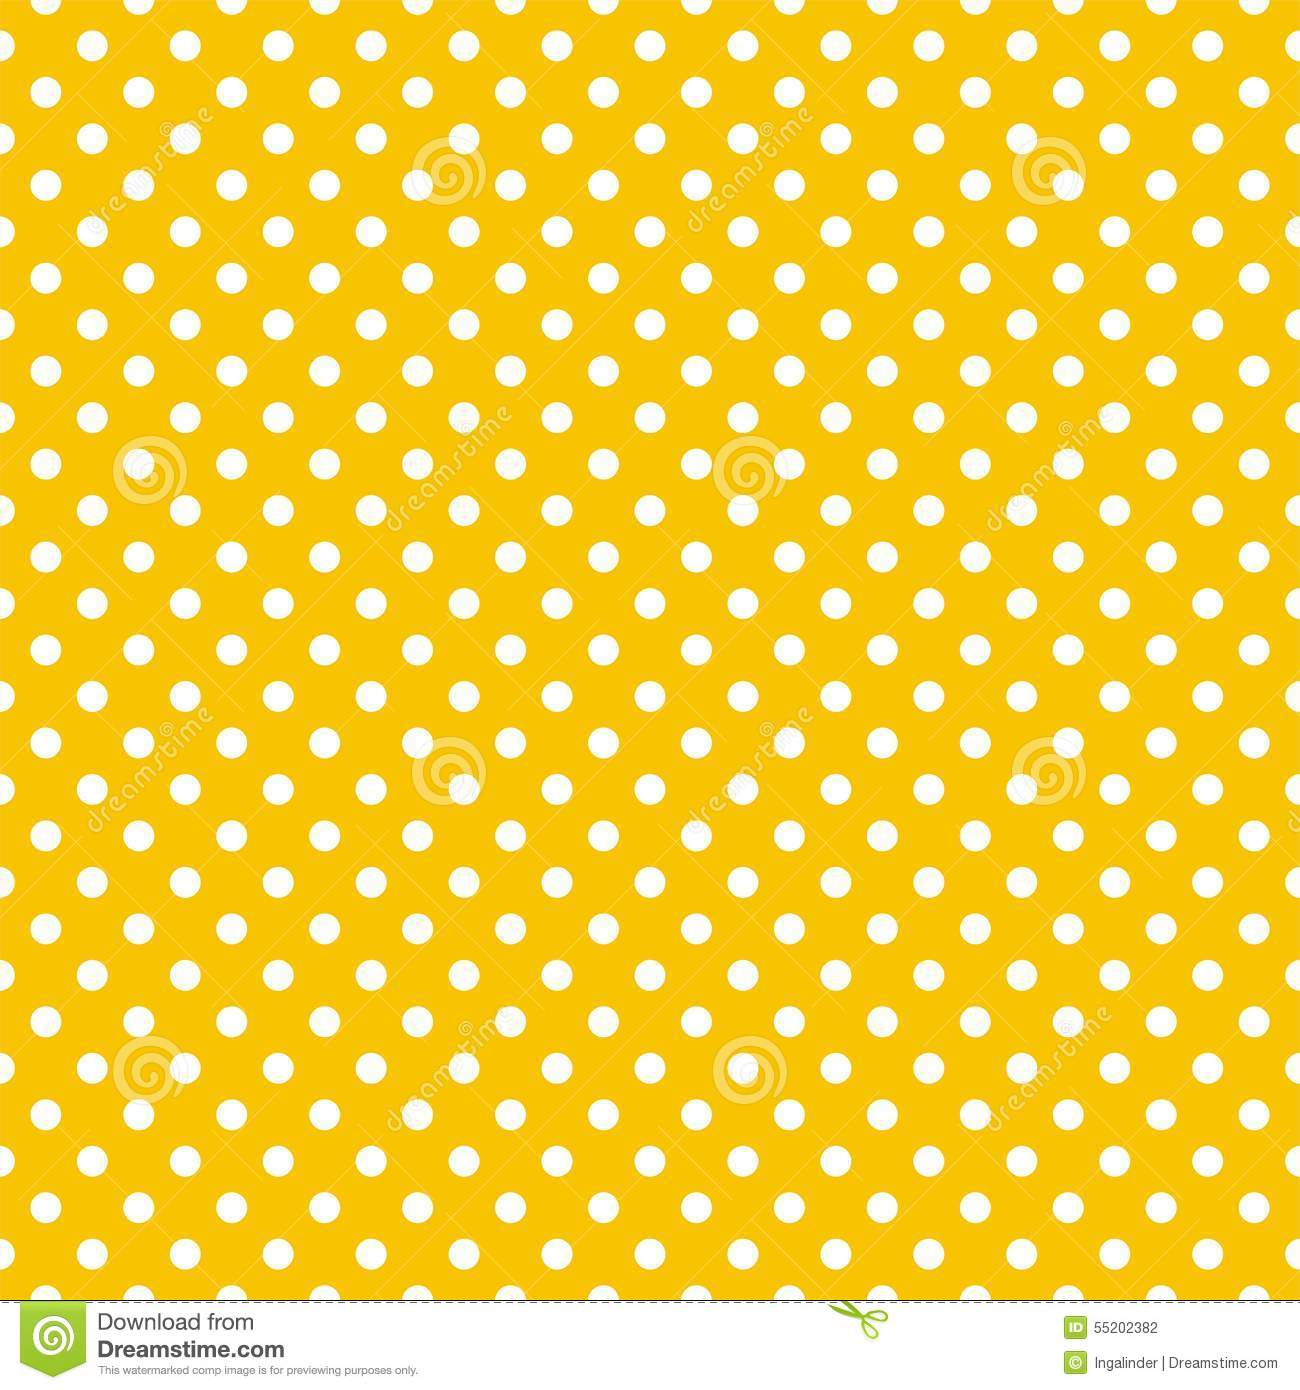 Yellow and white pattern background - photo#28